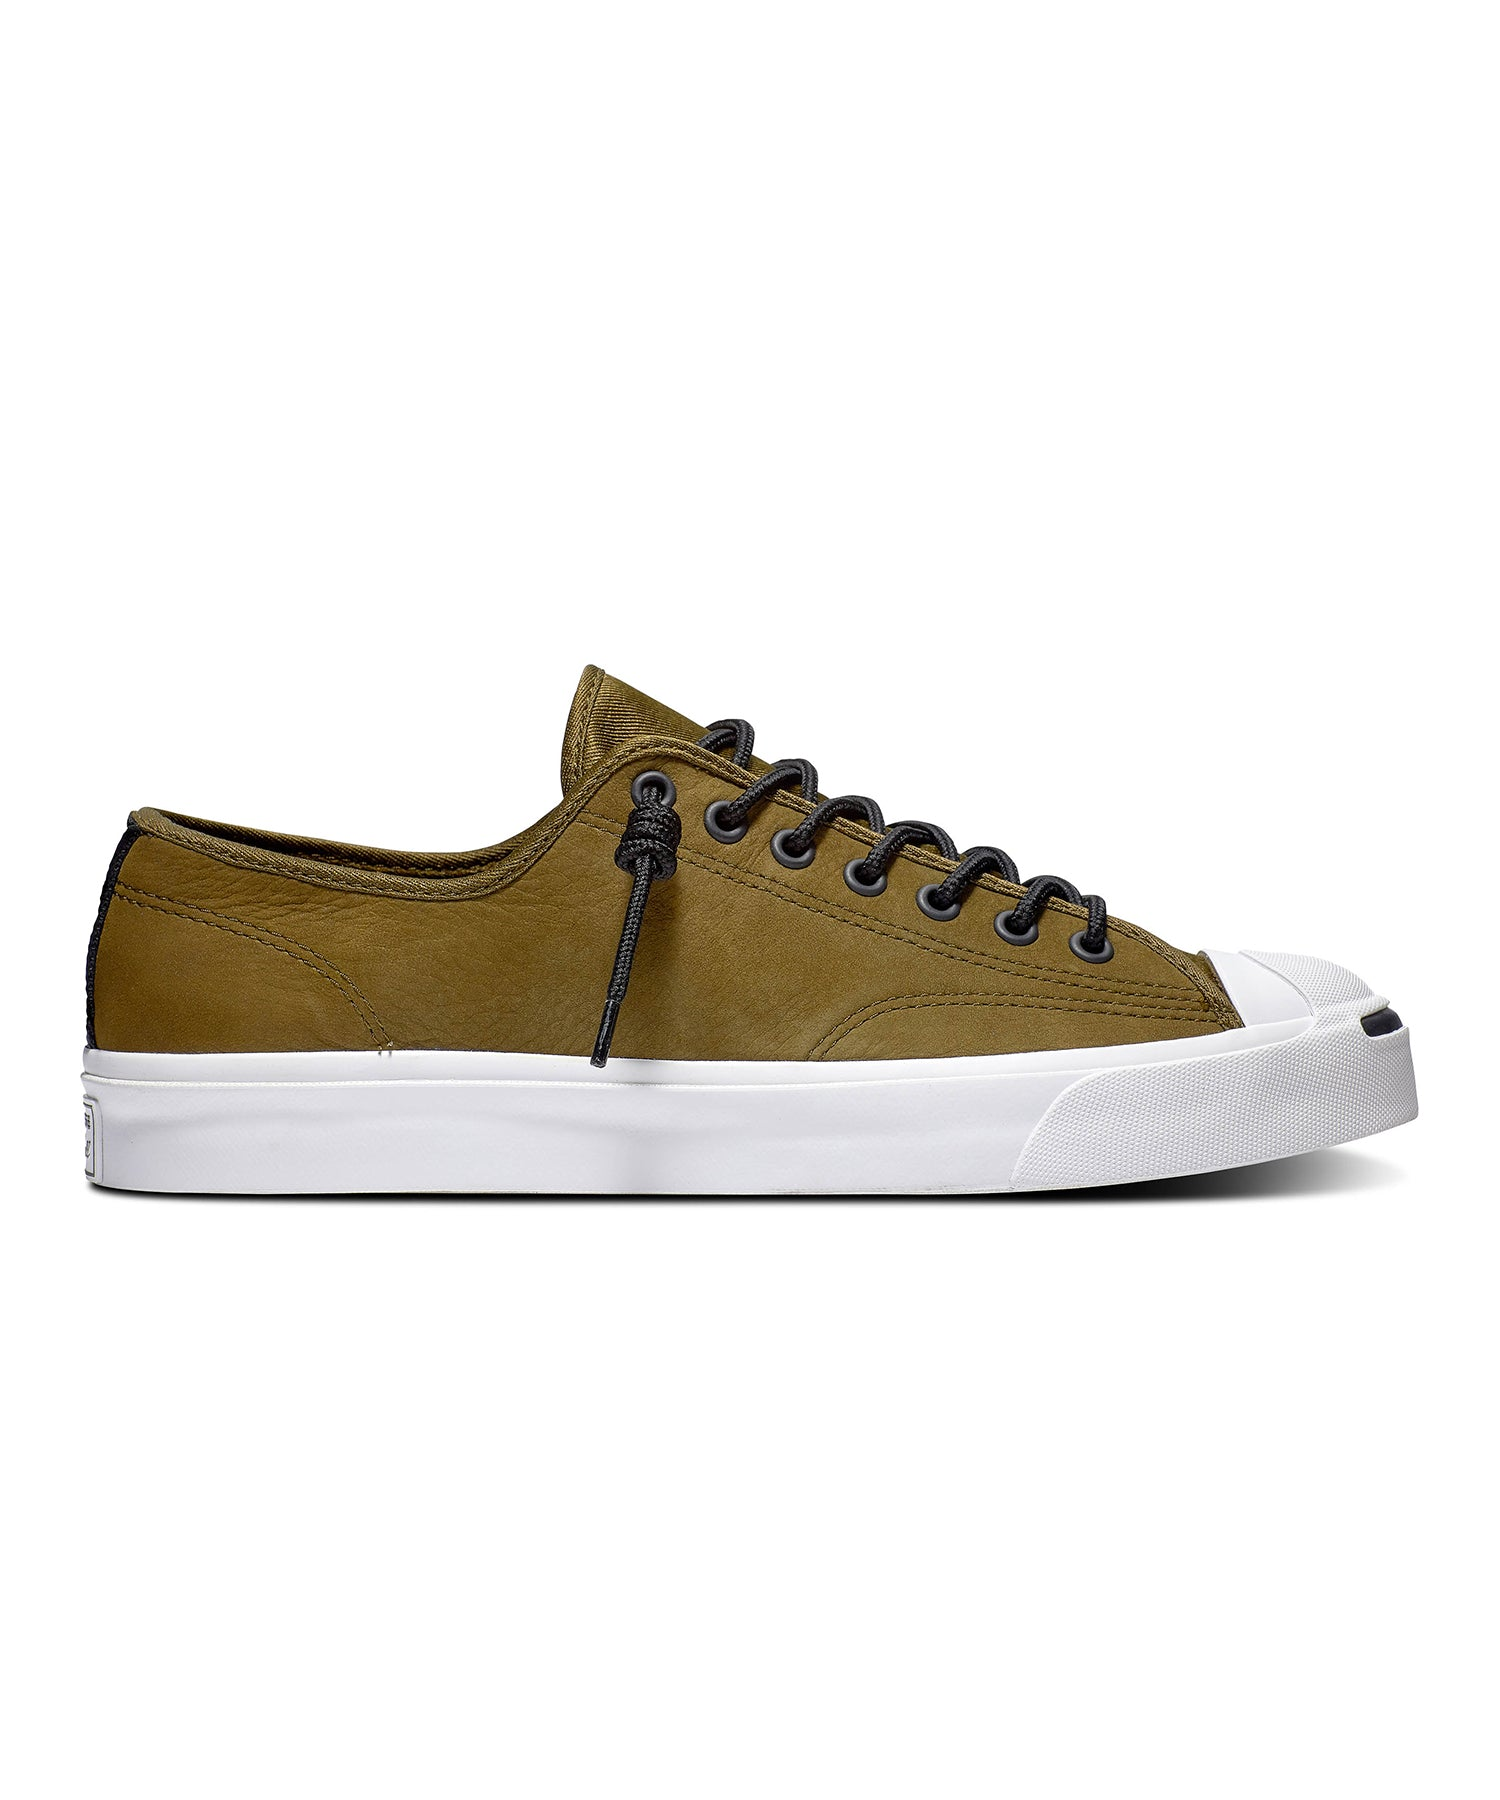 Jack Purcell Nubuck Low Top in Olive